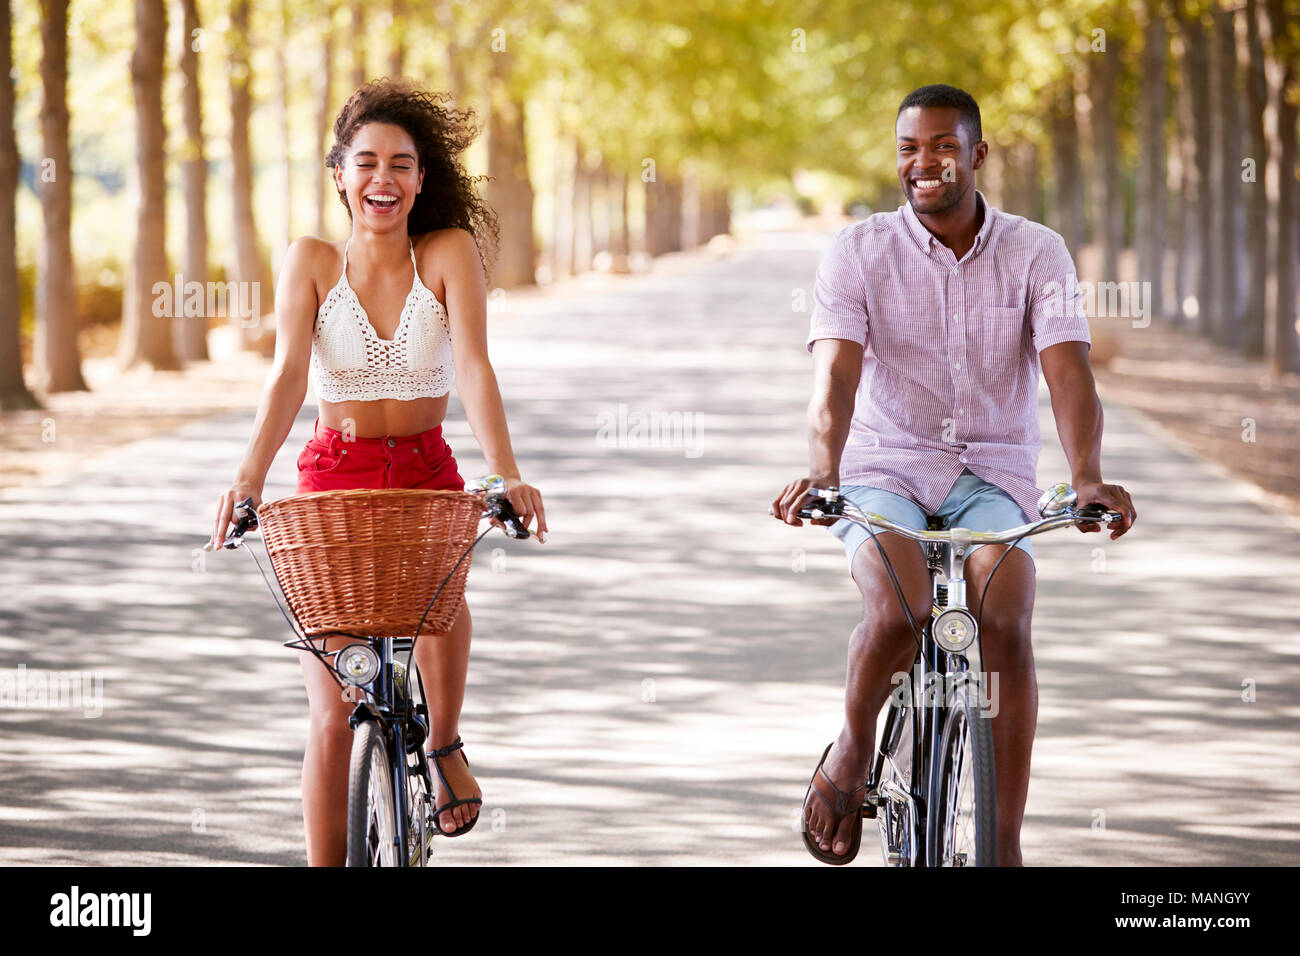 Young caucasian couple riding bicycles sur une route bordée d'arbres Banque D'Images